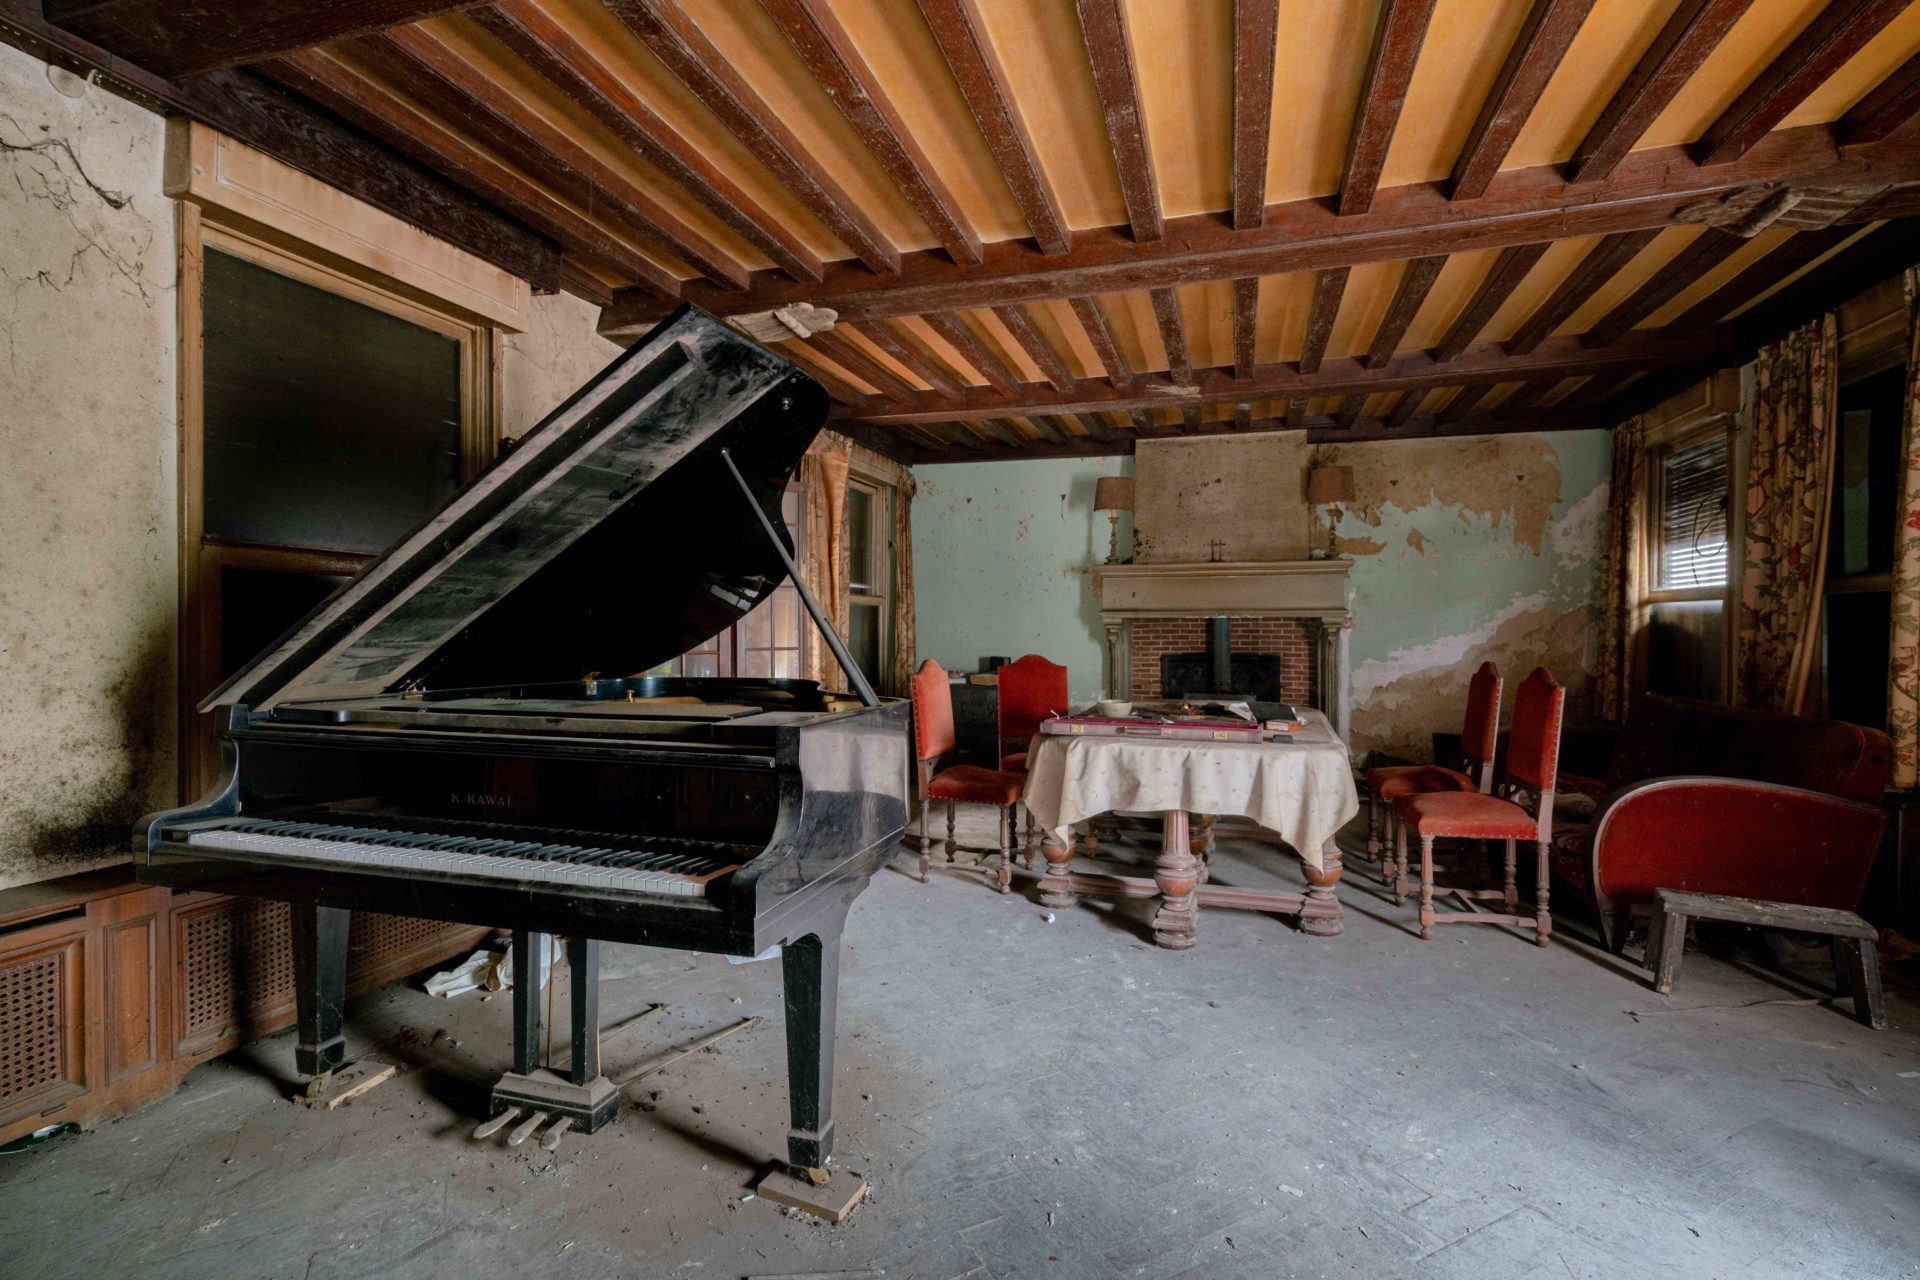 abandoned piano in Belgium, Romain Thiery photographer, requiem pour pianos series, abandoned pianos, photographies pianos